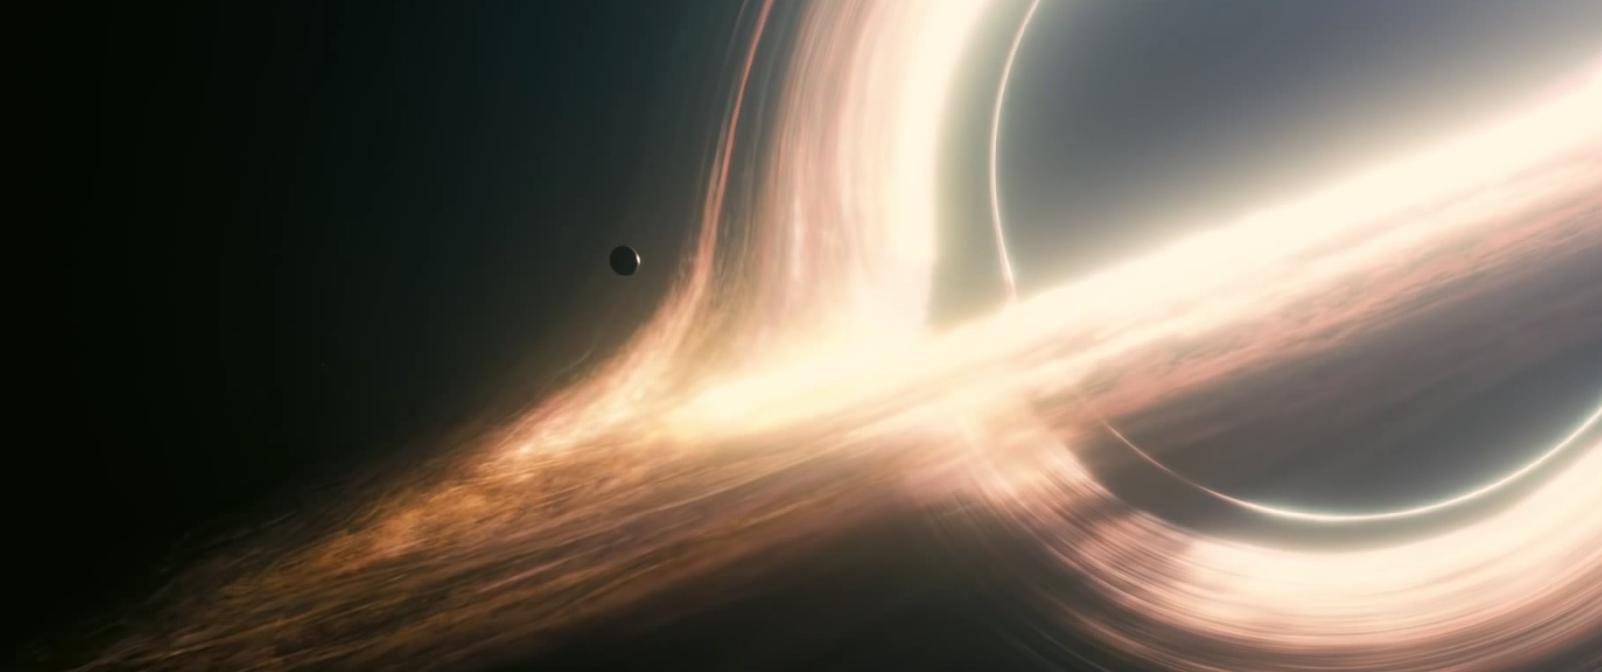 interstellarblackhole